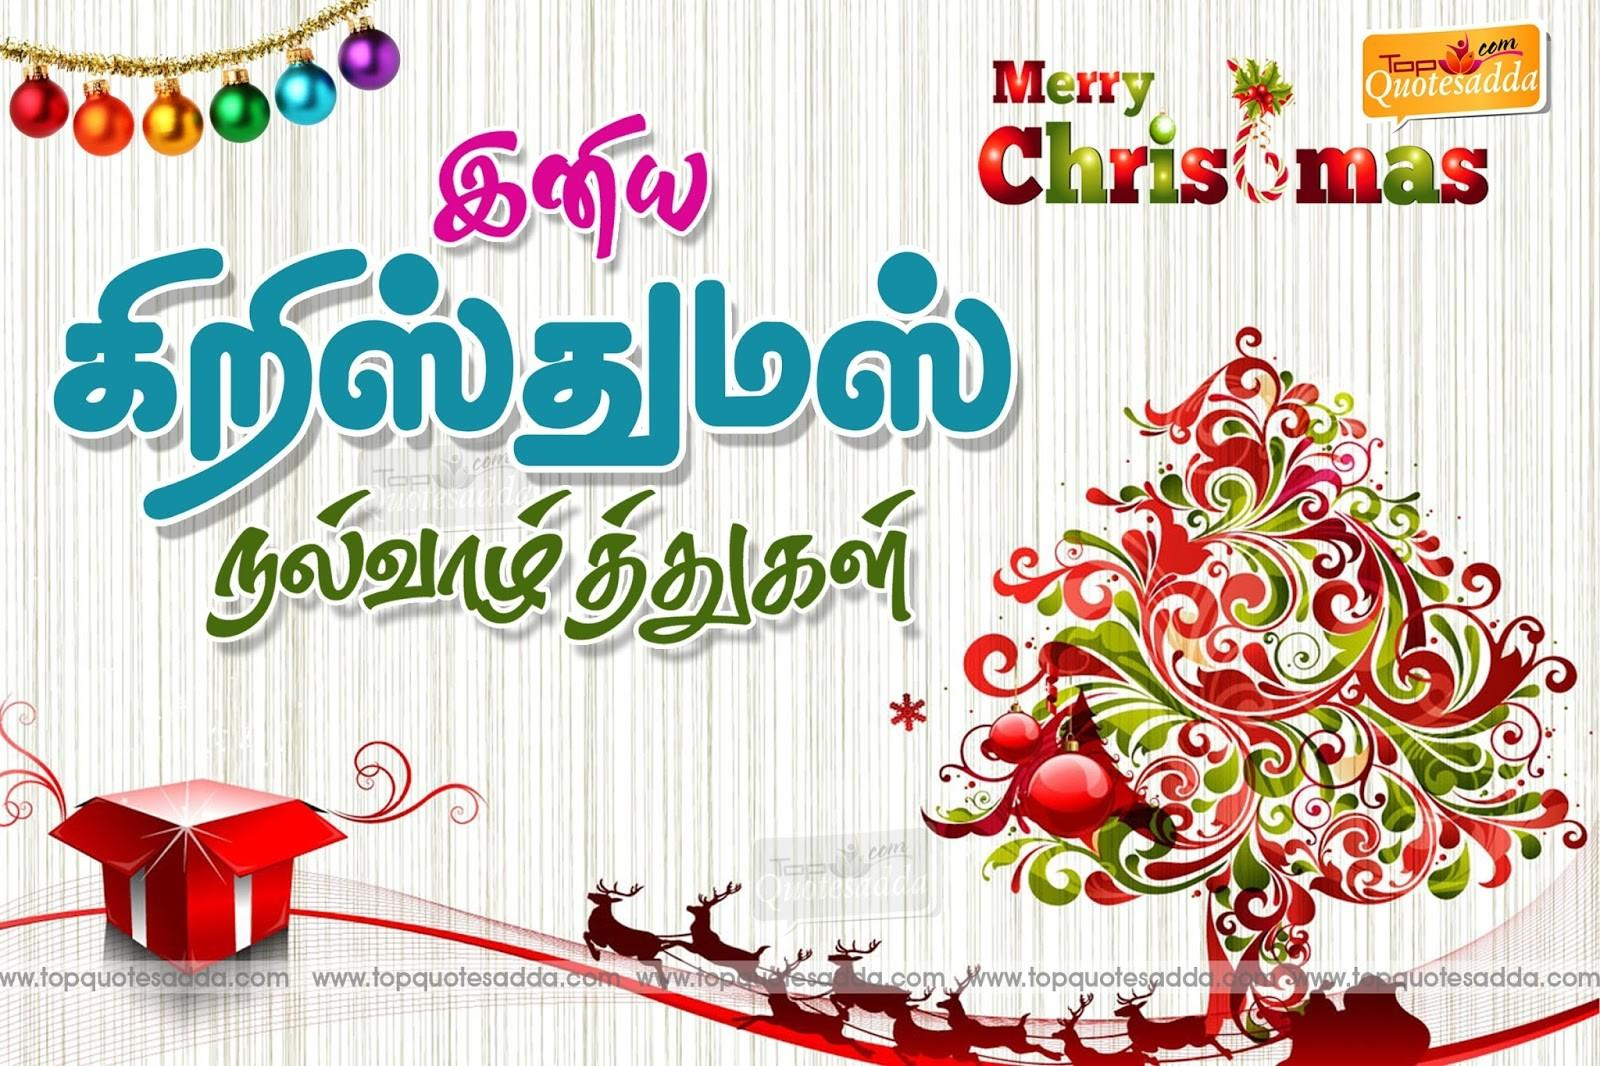 Merry Christmas Wishes Quotes Friends